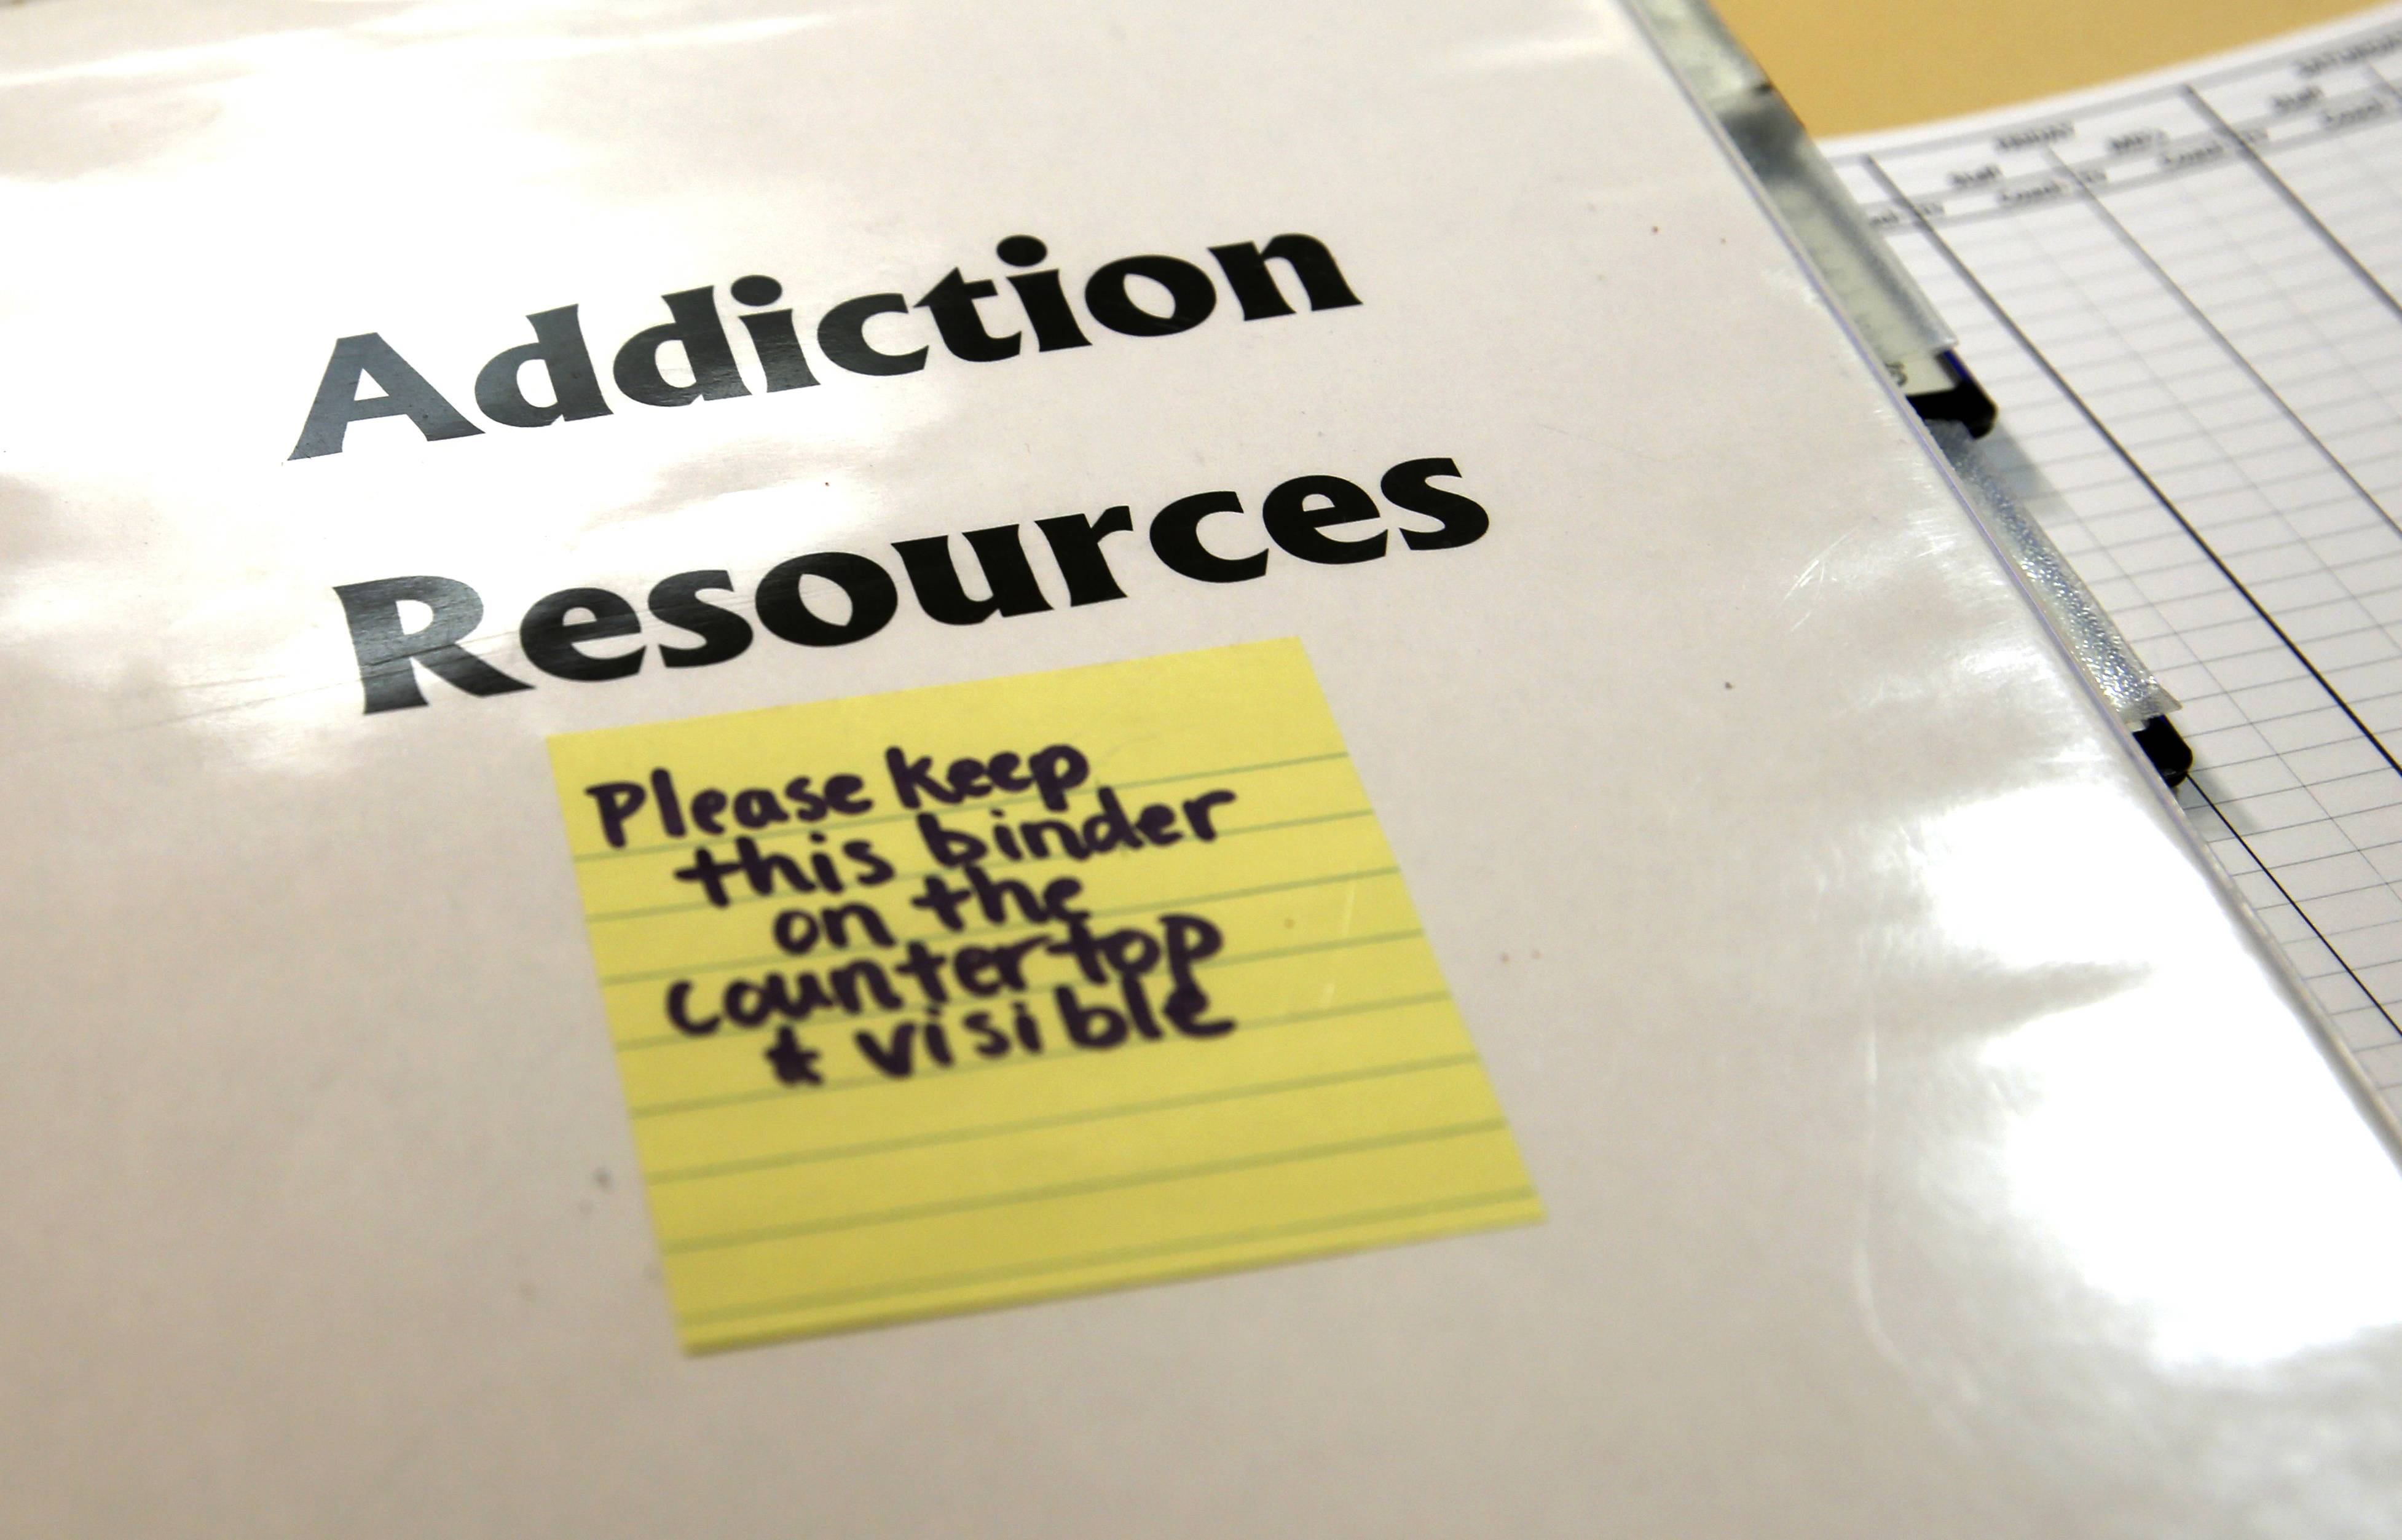 This playbook for addiction is distributed to patients at Advocate Good Samaritan Hospital in Downers Grove which offers a medically centered detox program.